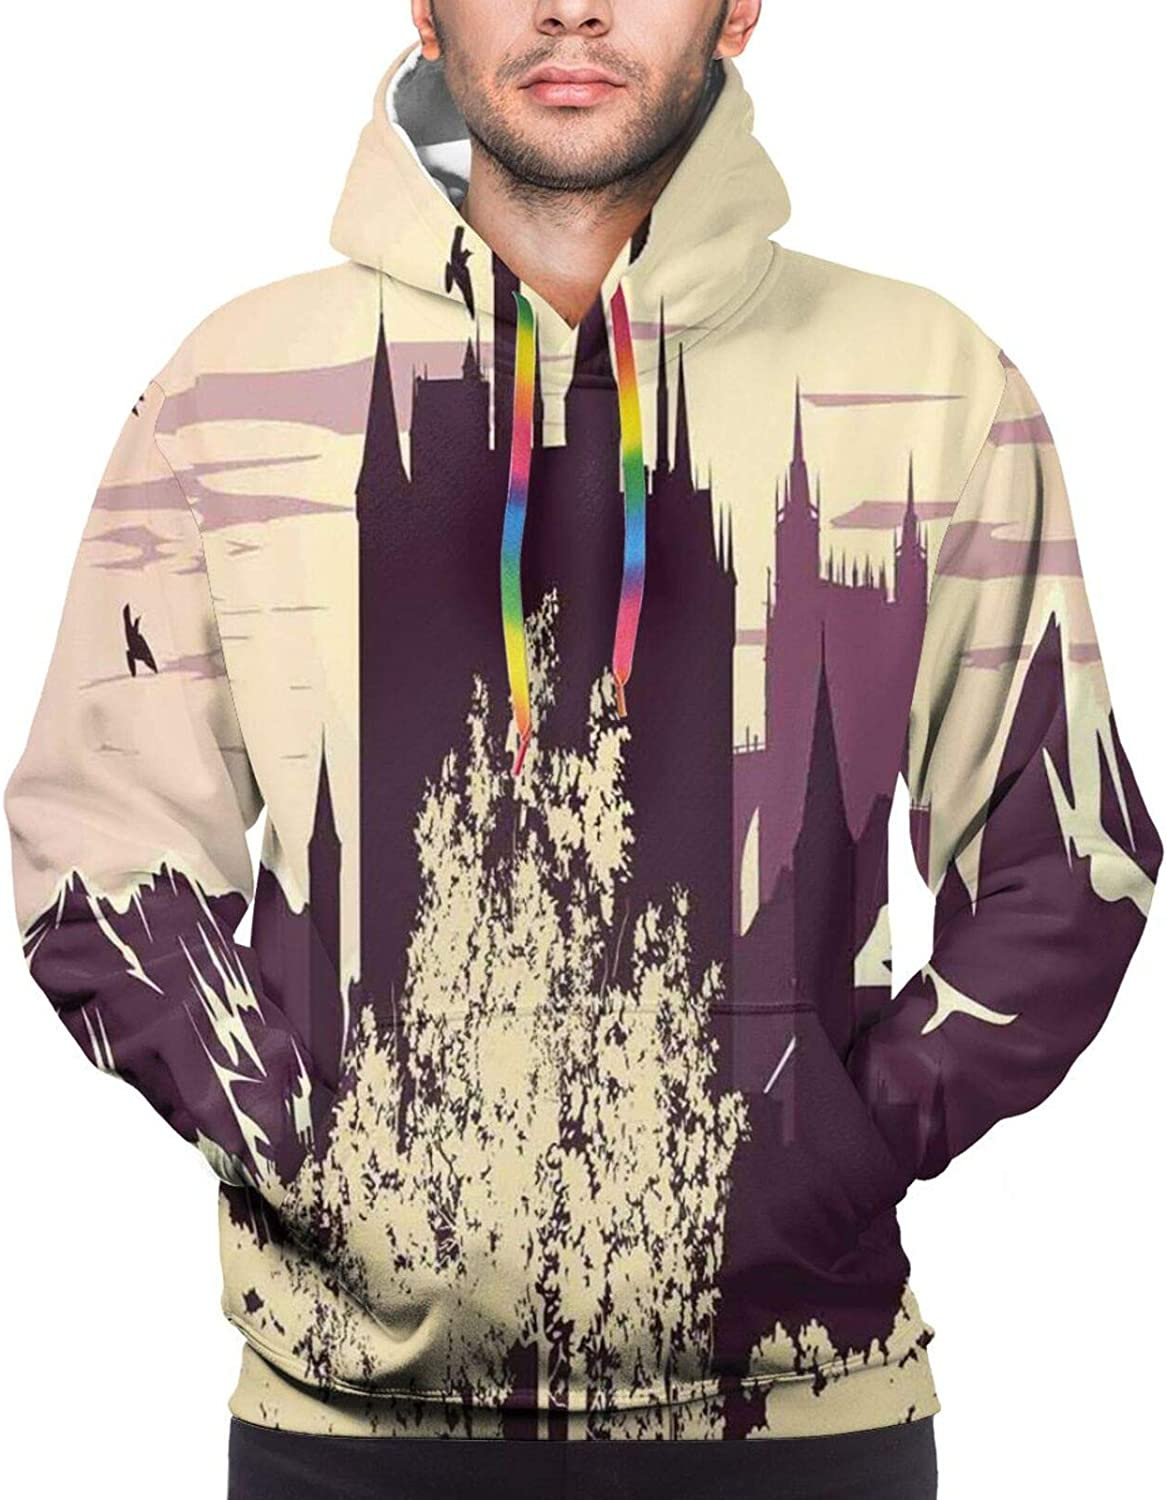 Men's Hoodies Sweatshirts,Castle from Middle Ages with Pink Toned Flags and Thriving Spring Forest Cartoon